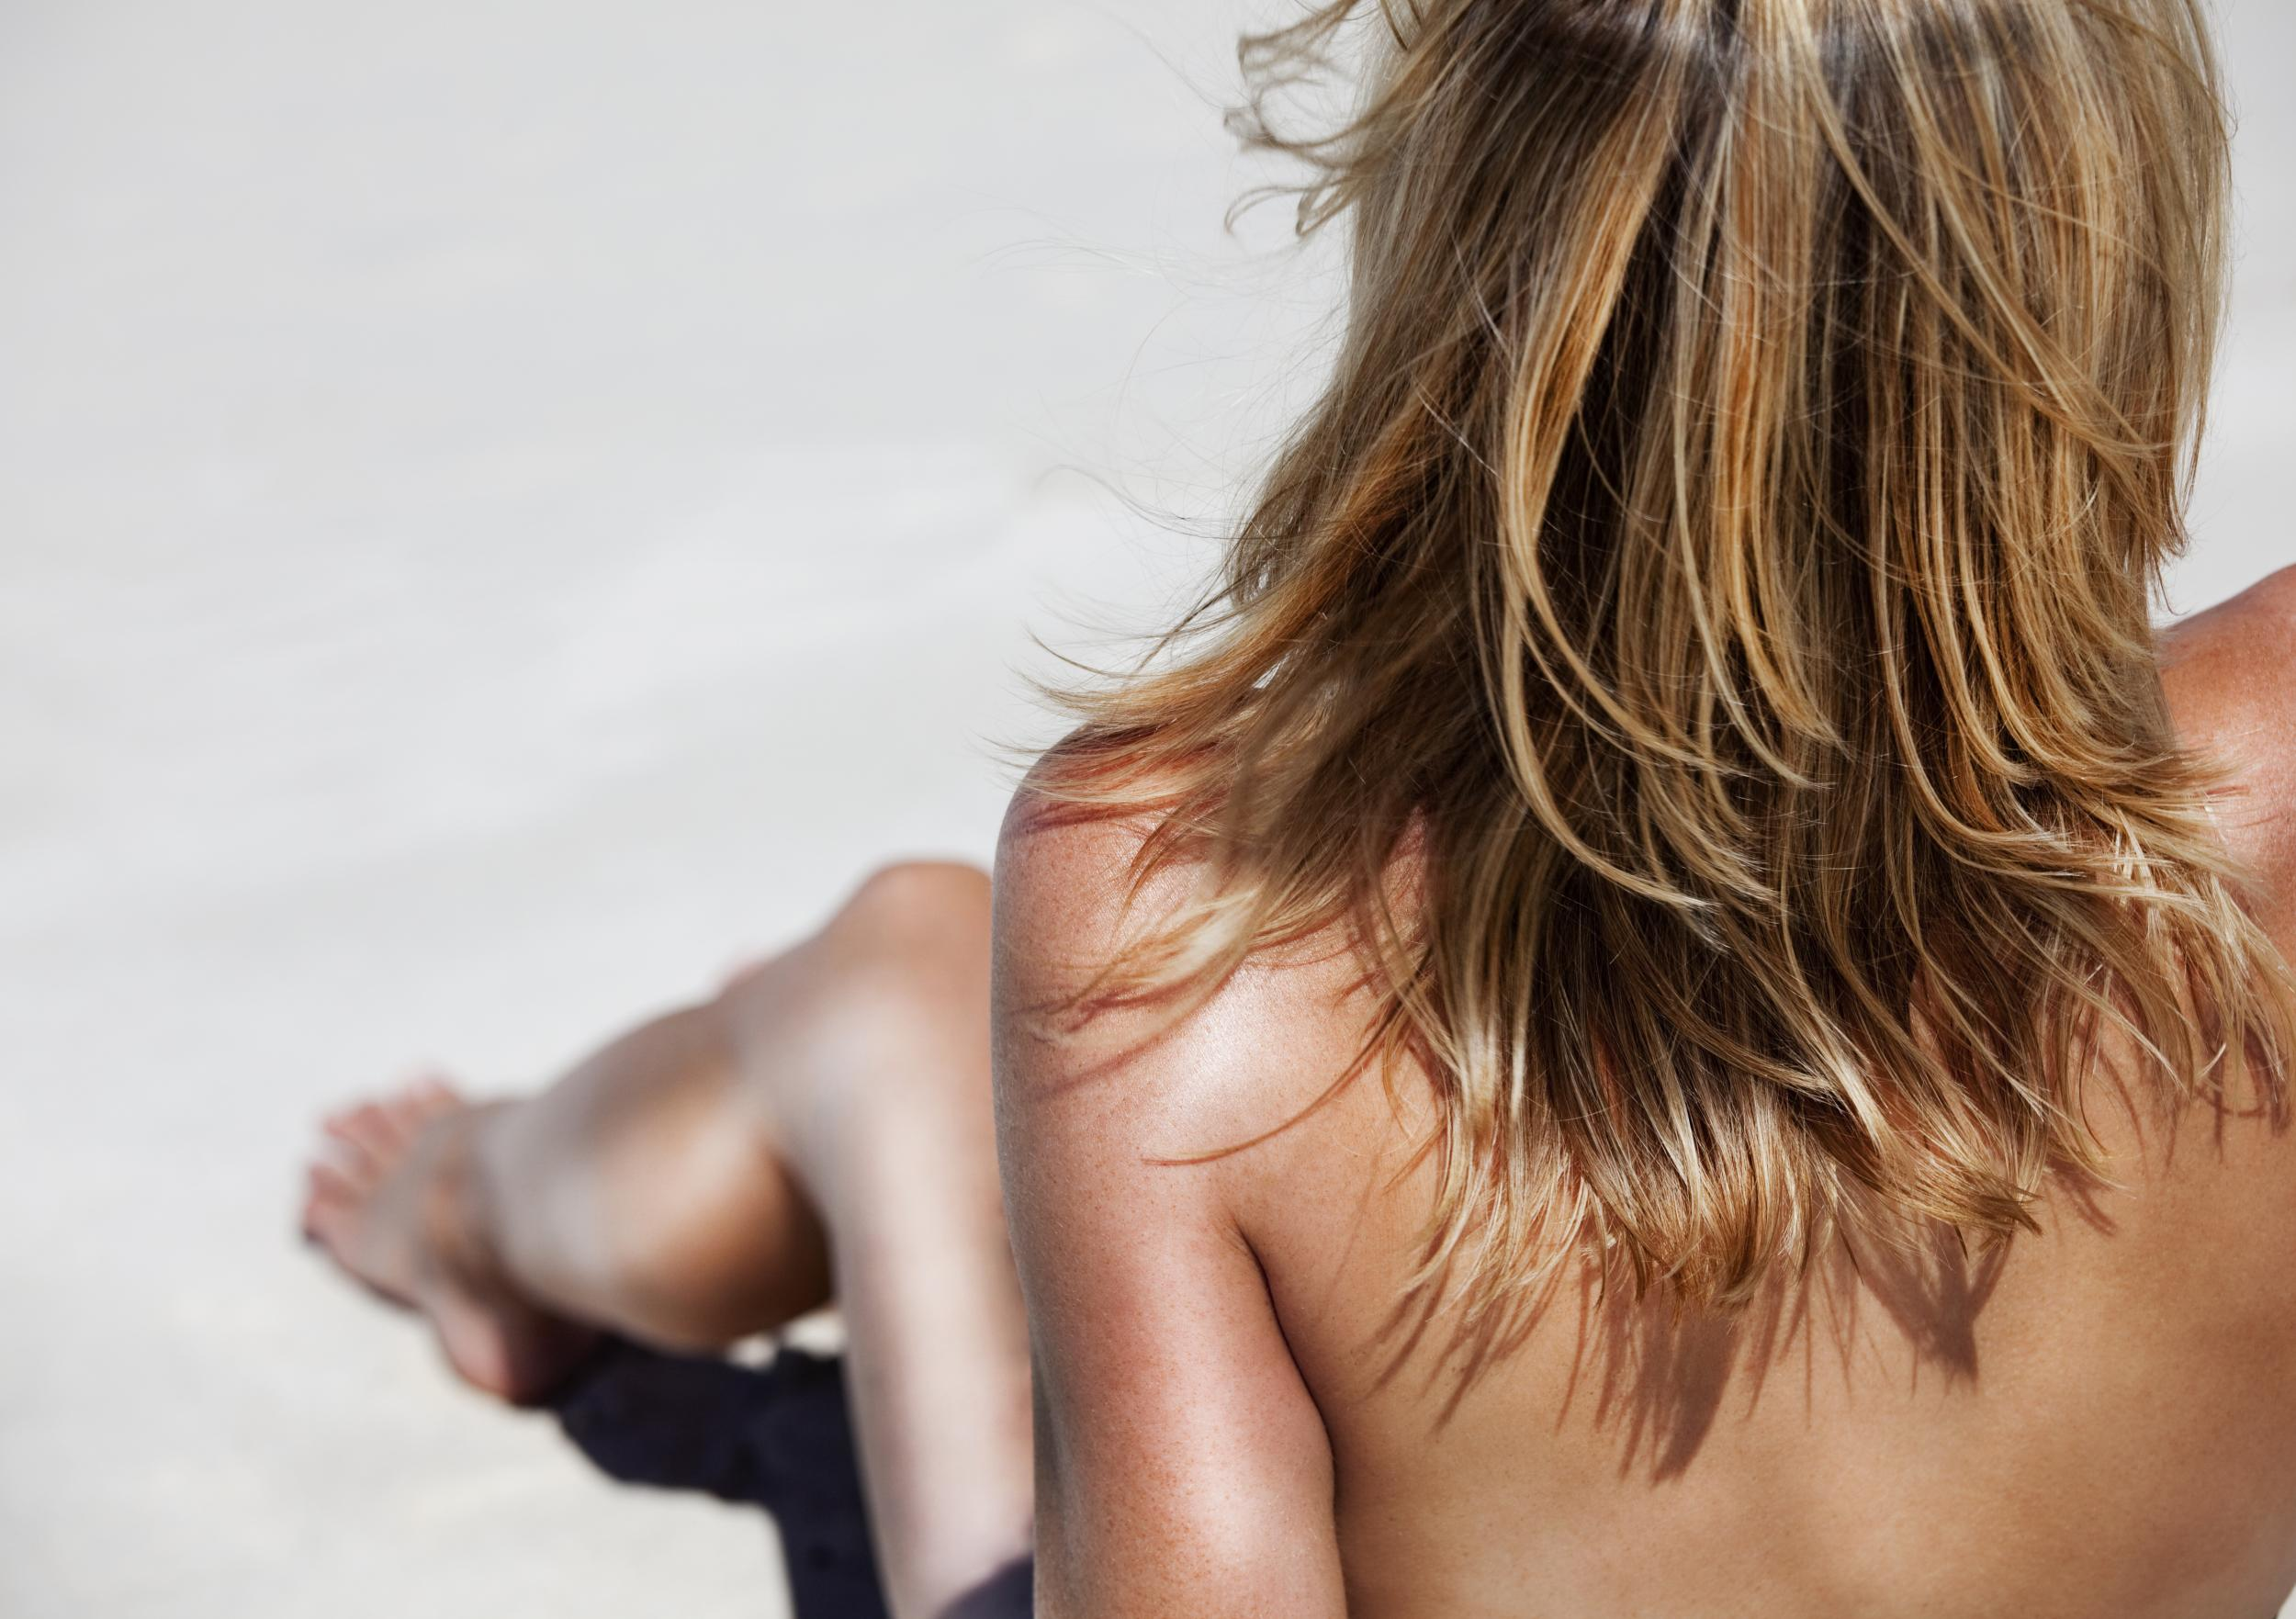 How France is embracing the nudist lifestyle